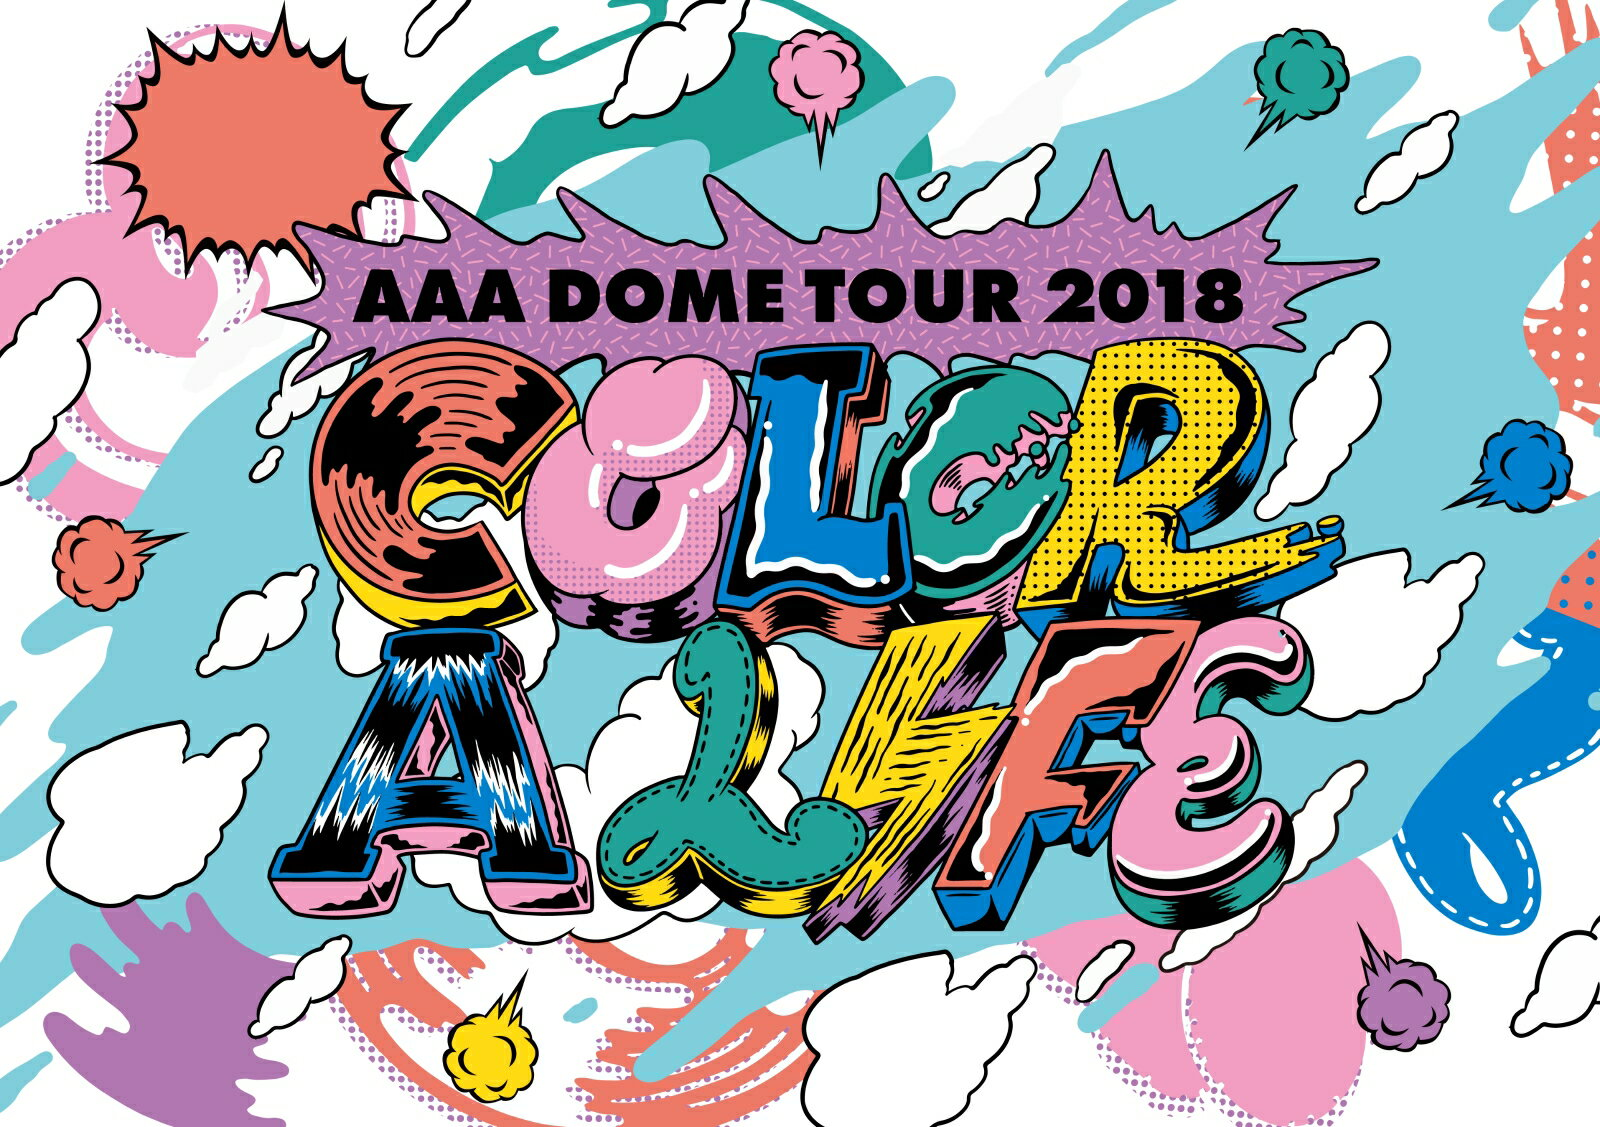 AAA DOME TOUR 2018 COLOR A LIFE(初回生産限定盤)(スマプラ対応)画像